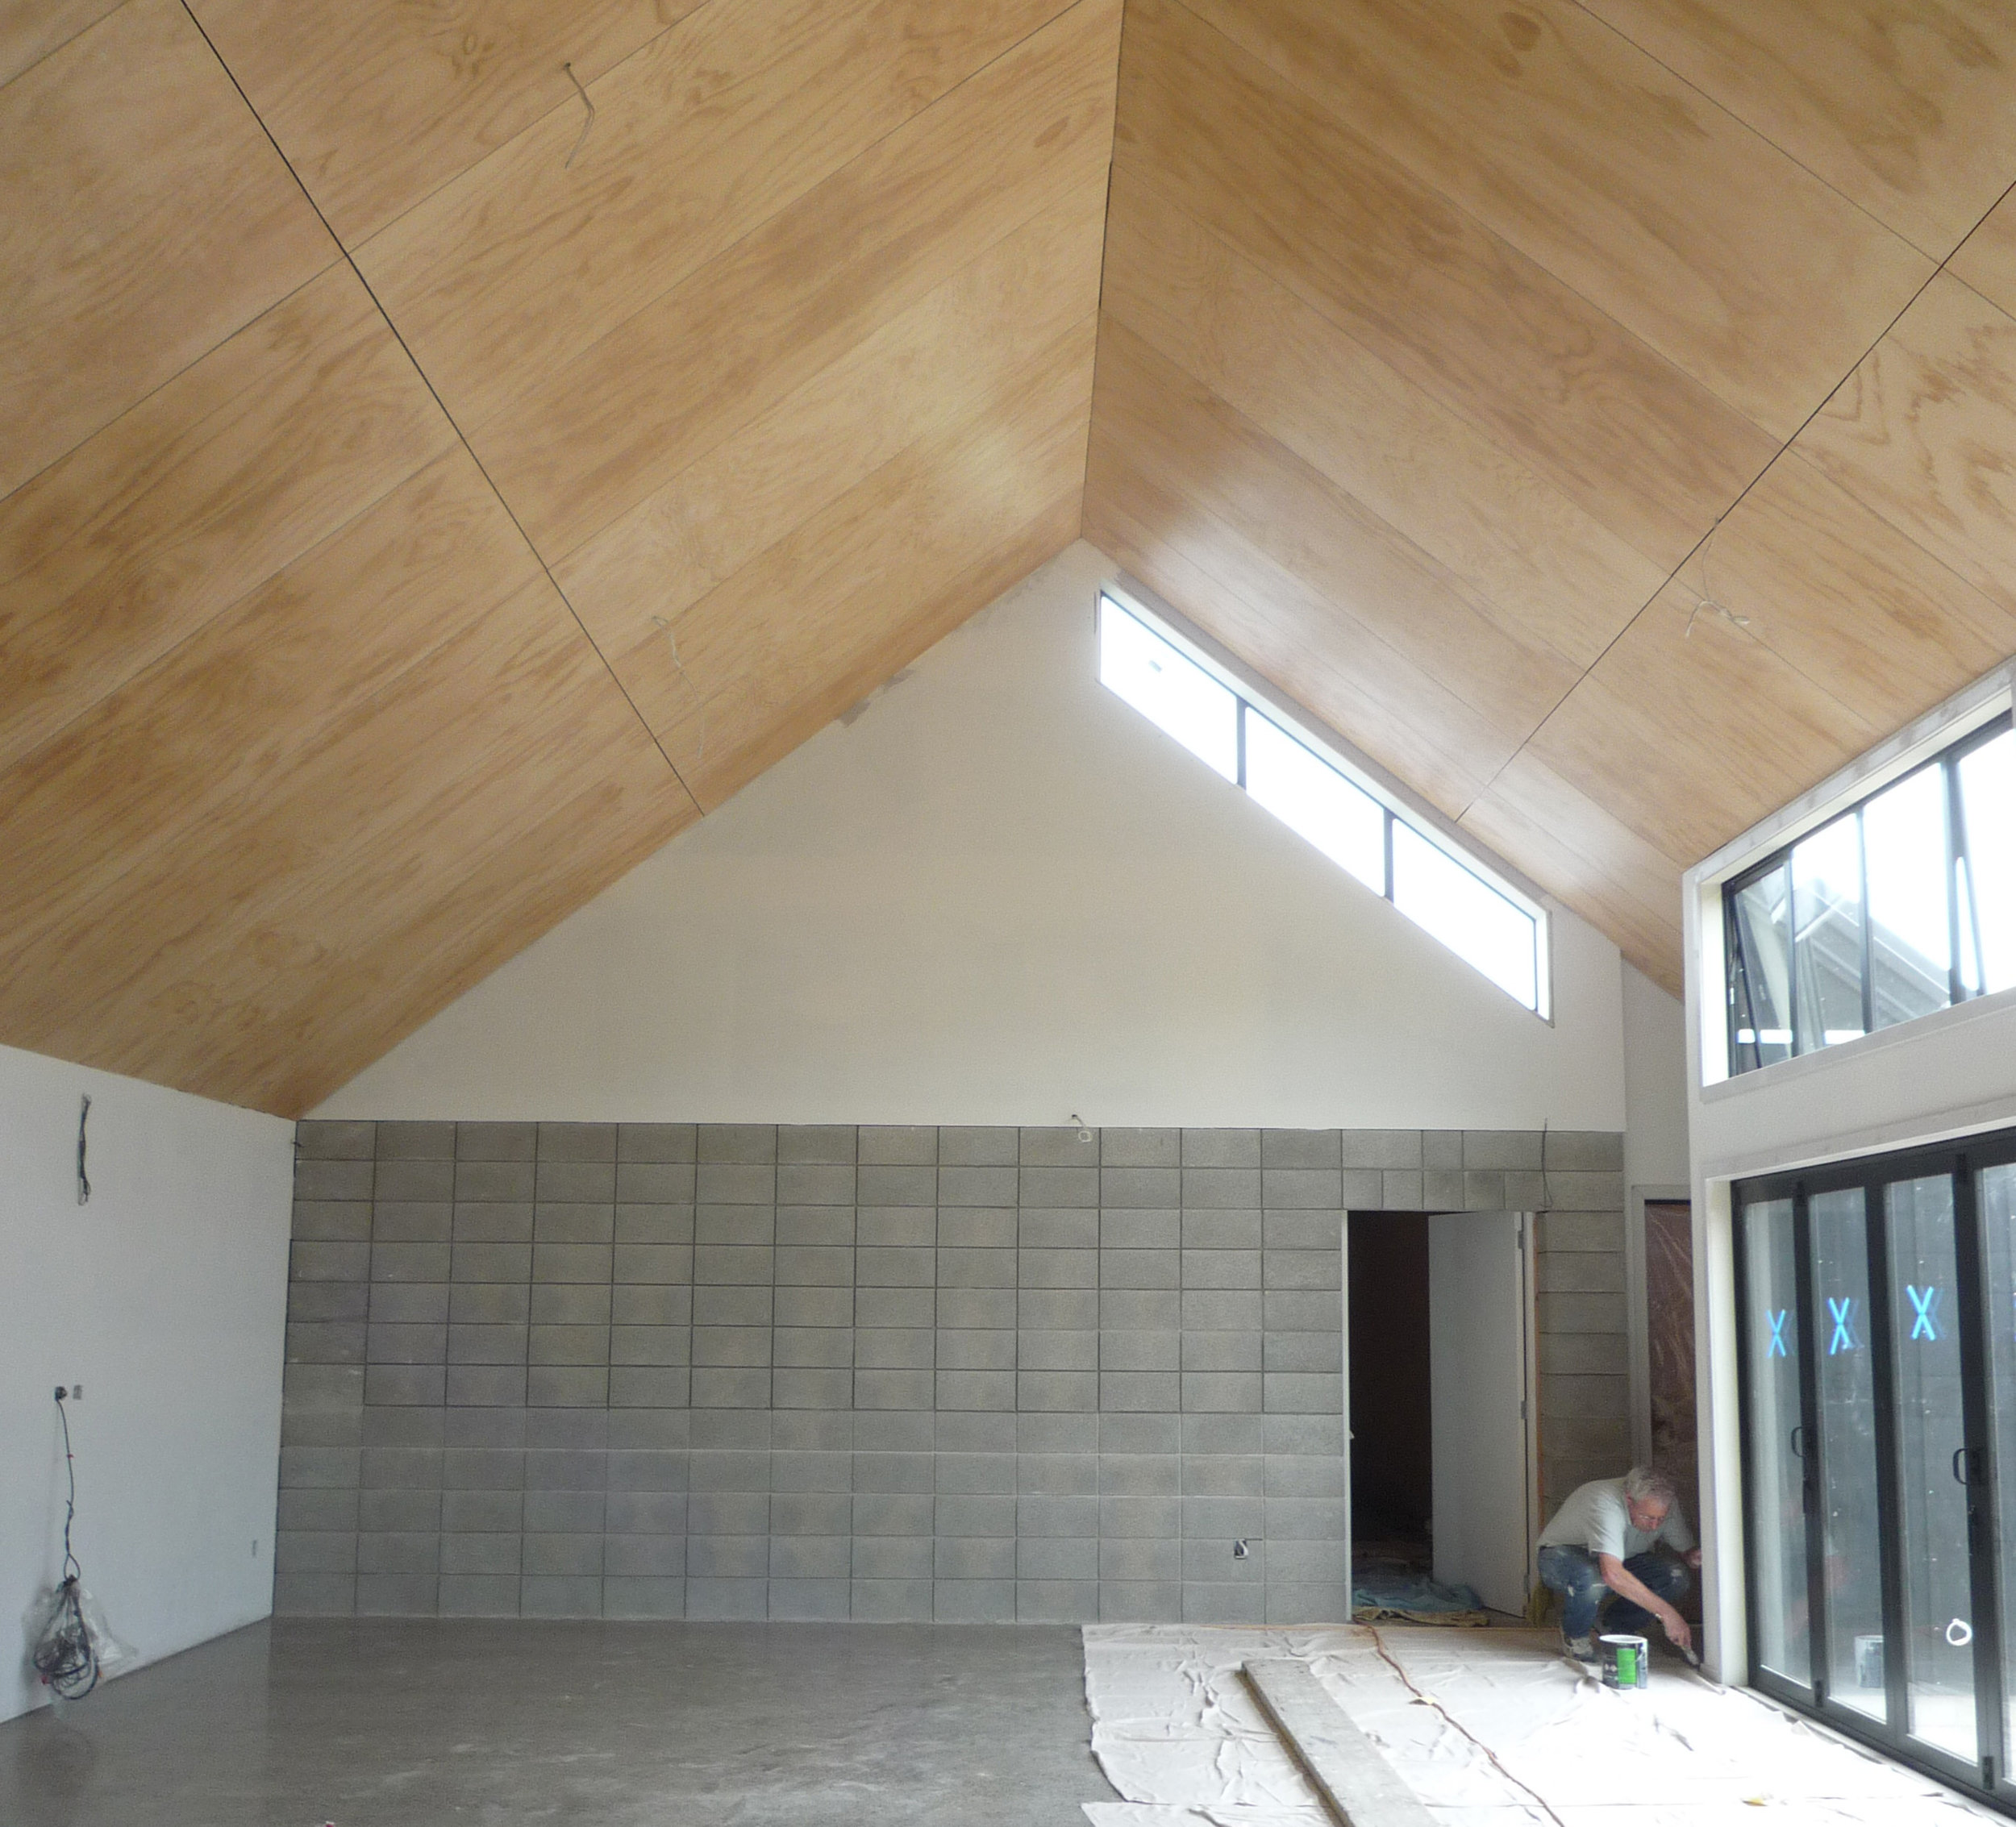 Mid-construction -  The polished concrete floor, concrete block walls, white walls, plywood ceilings and trims all compliment each other, creating a hard wearing, warm and stylish space.